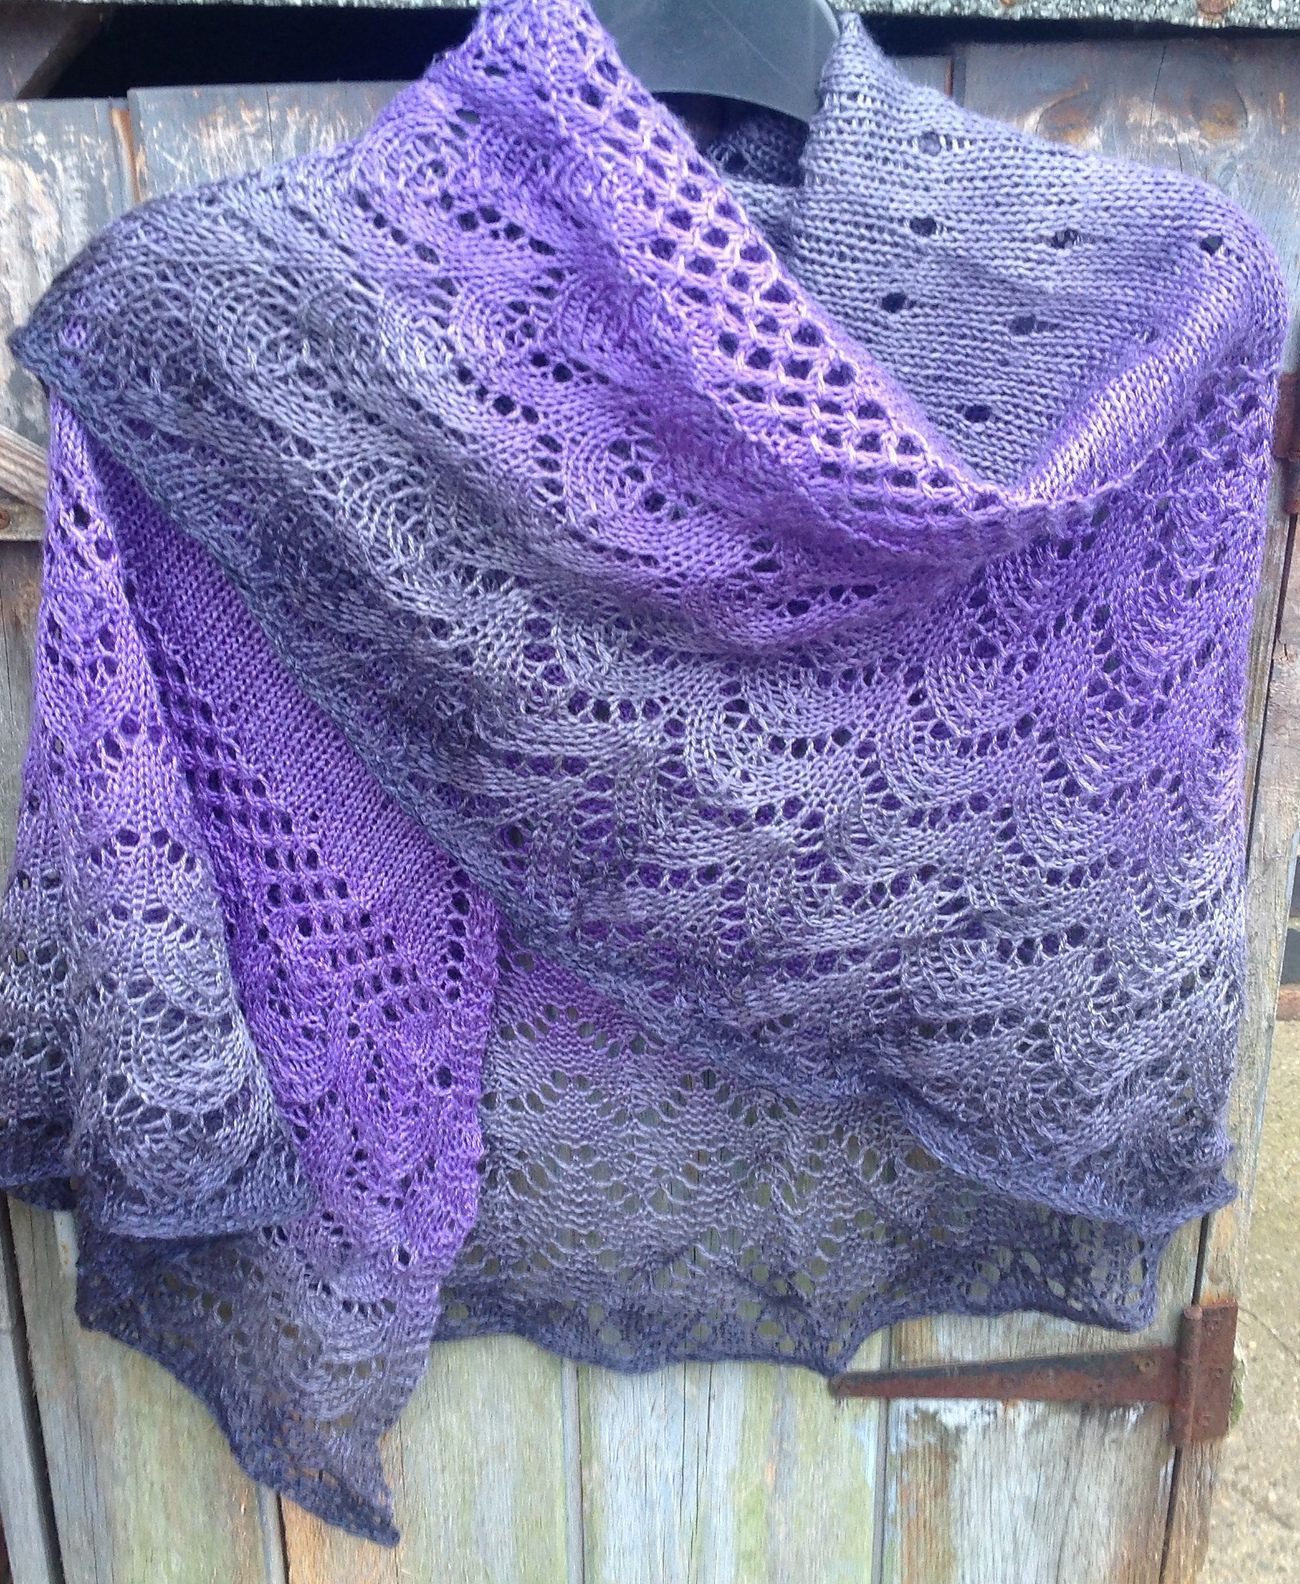 Inspirational Free Knitting Pattern for E Skein Kindness Shawl 3 Free Lace Shawl Knitting Patterns Of Attractive 40 Photos Free Lace Shawl Knitting Patterns